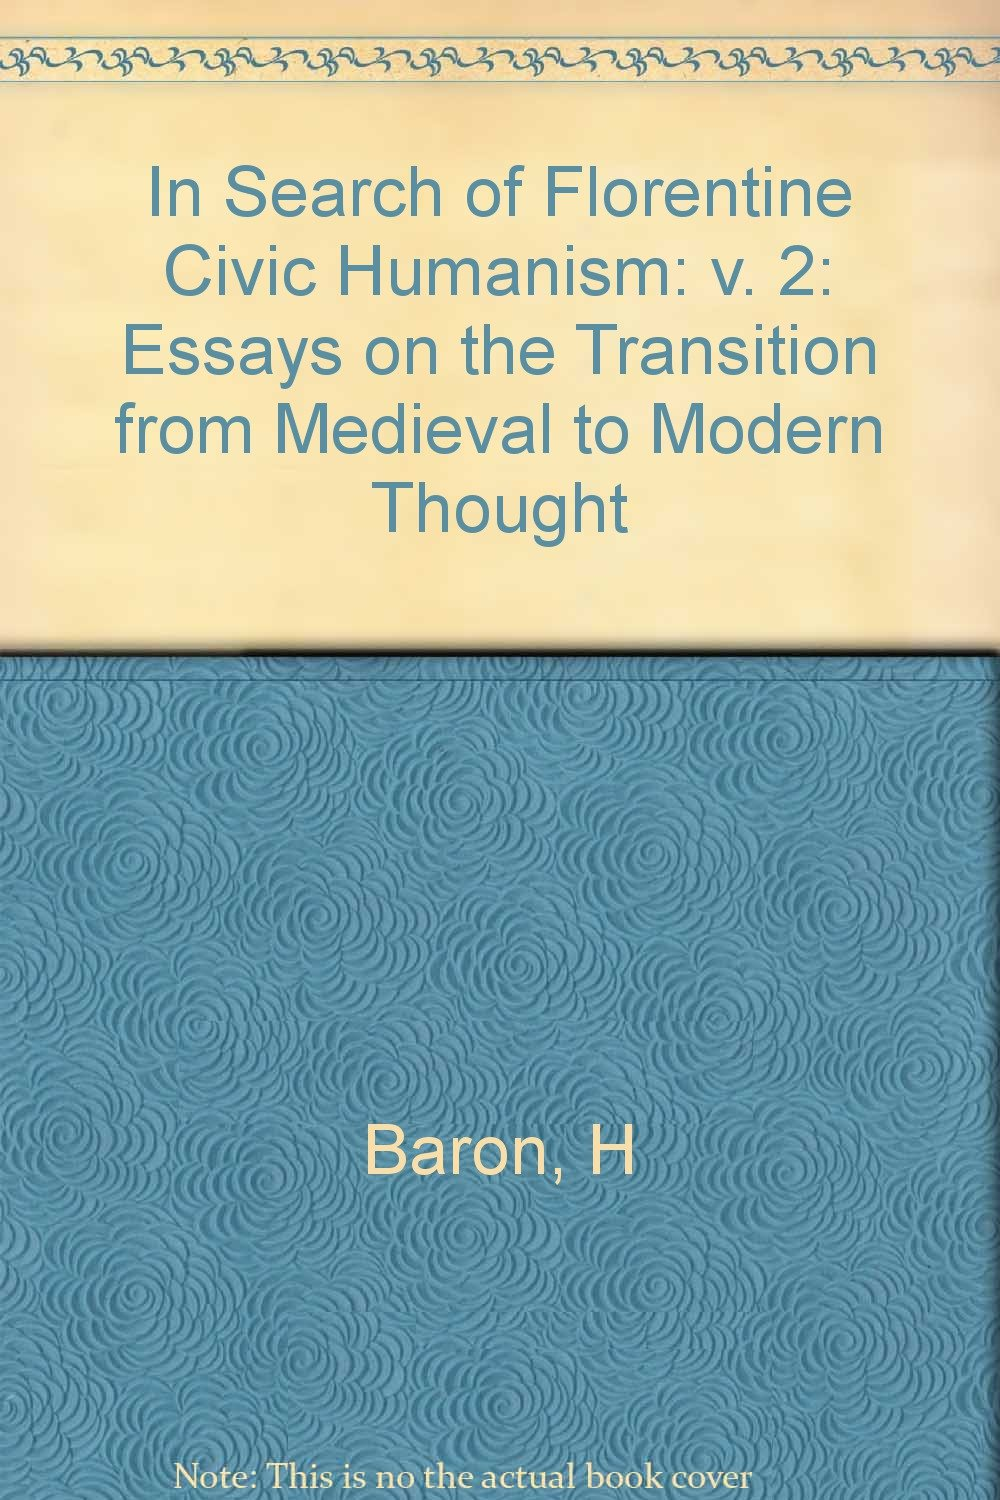 In Search of Florentine Civic Humanism: Essays on the